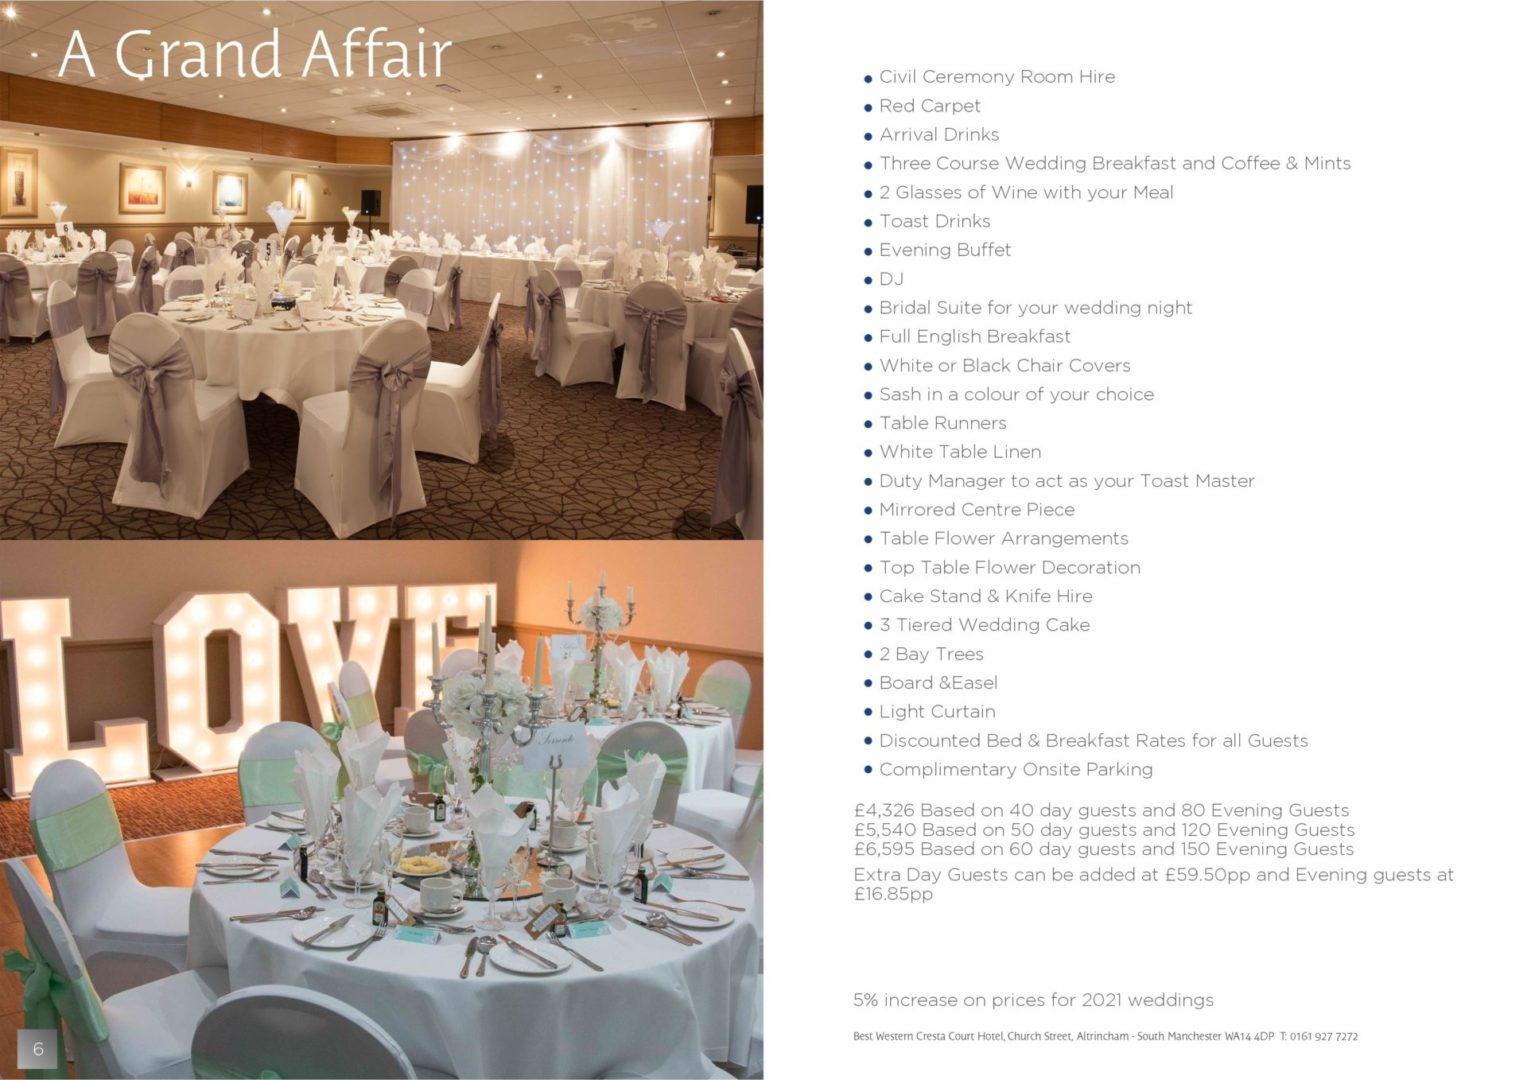 Best Wester Cresta Court Hotel Wedding venues in Manchester and Cheshire